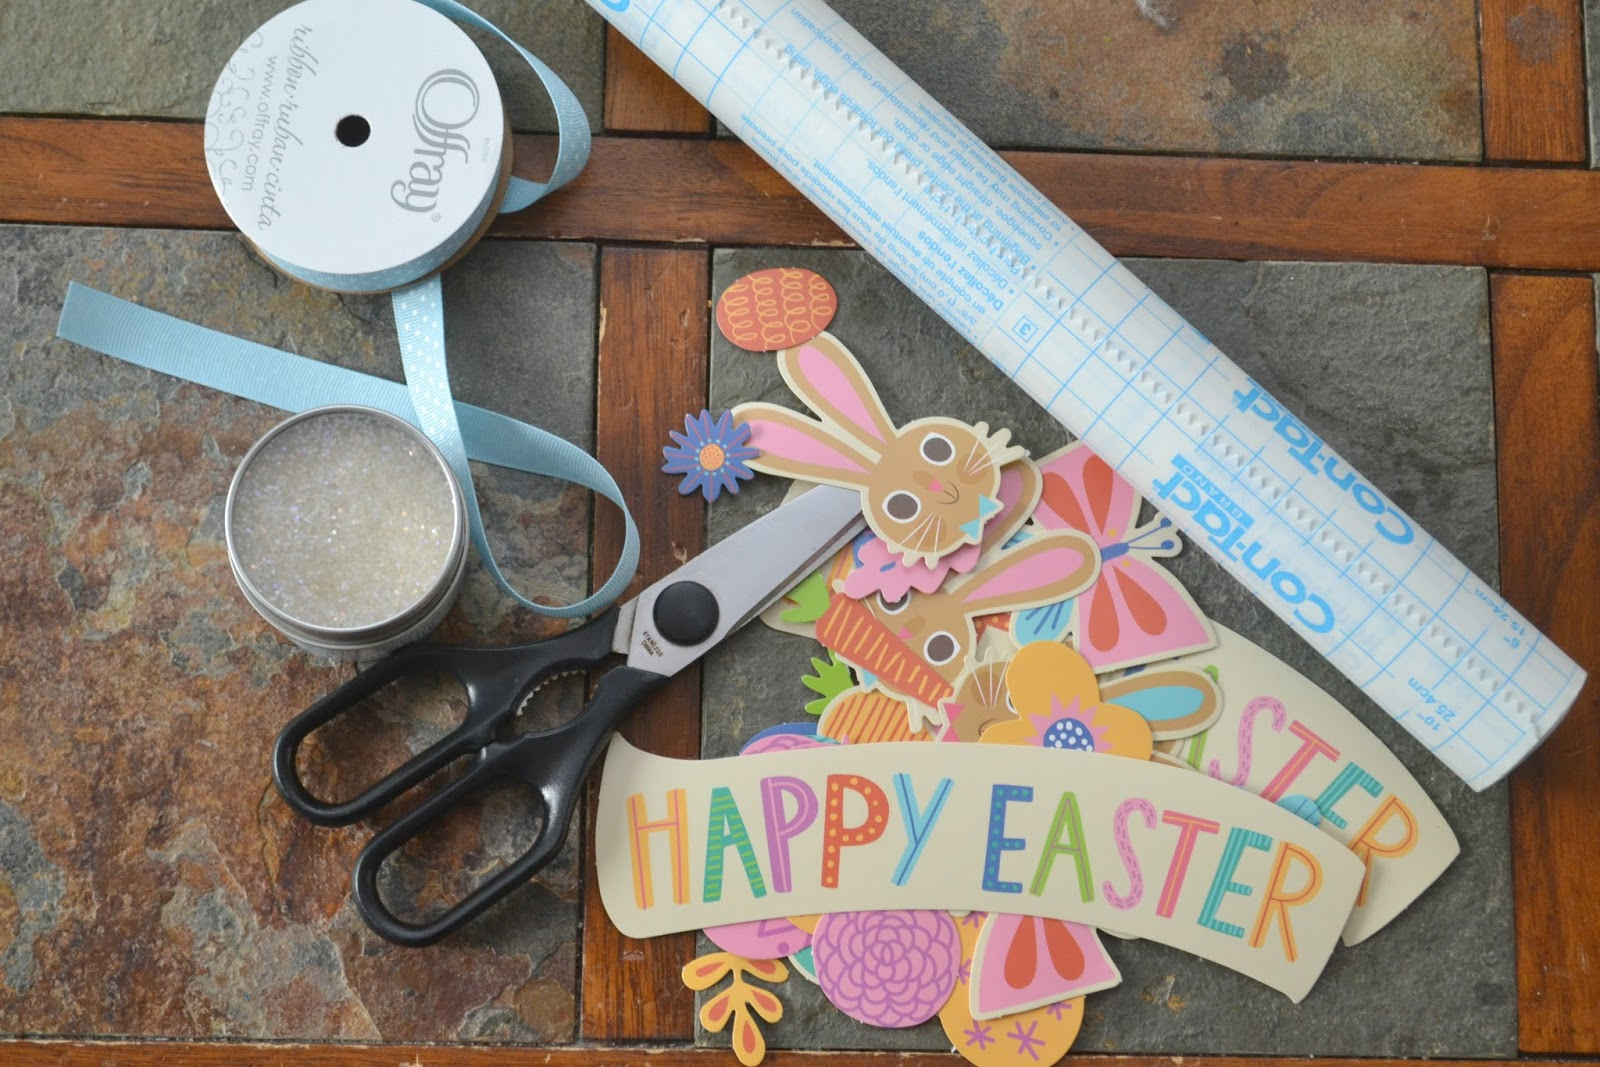 Contact paper for crafts subway art with the silhouette cameo and easter placemat craft for kids easter craft for kids easter placemat diy easter materials needed contact paper with contact paper for crafts jeuxipadfo Image collections